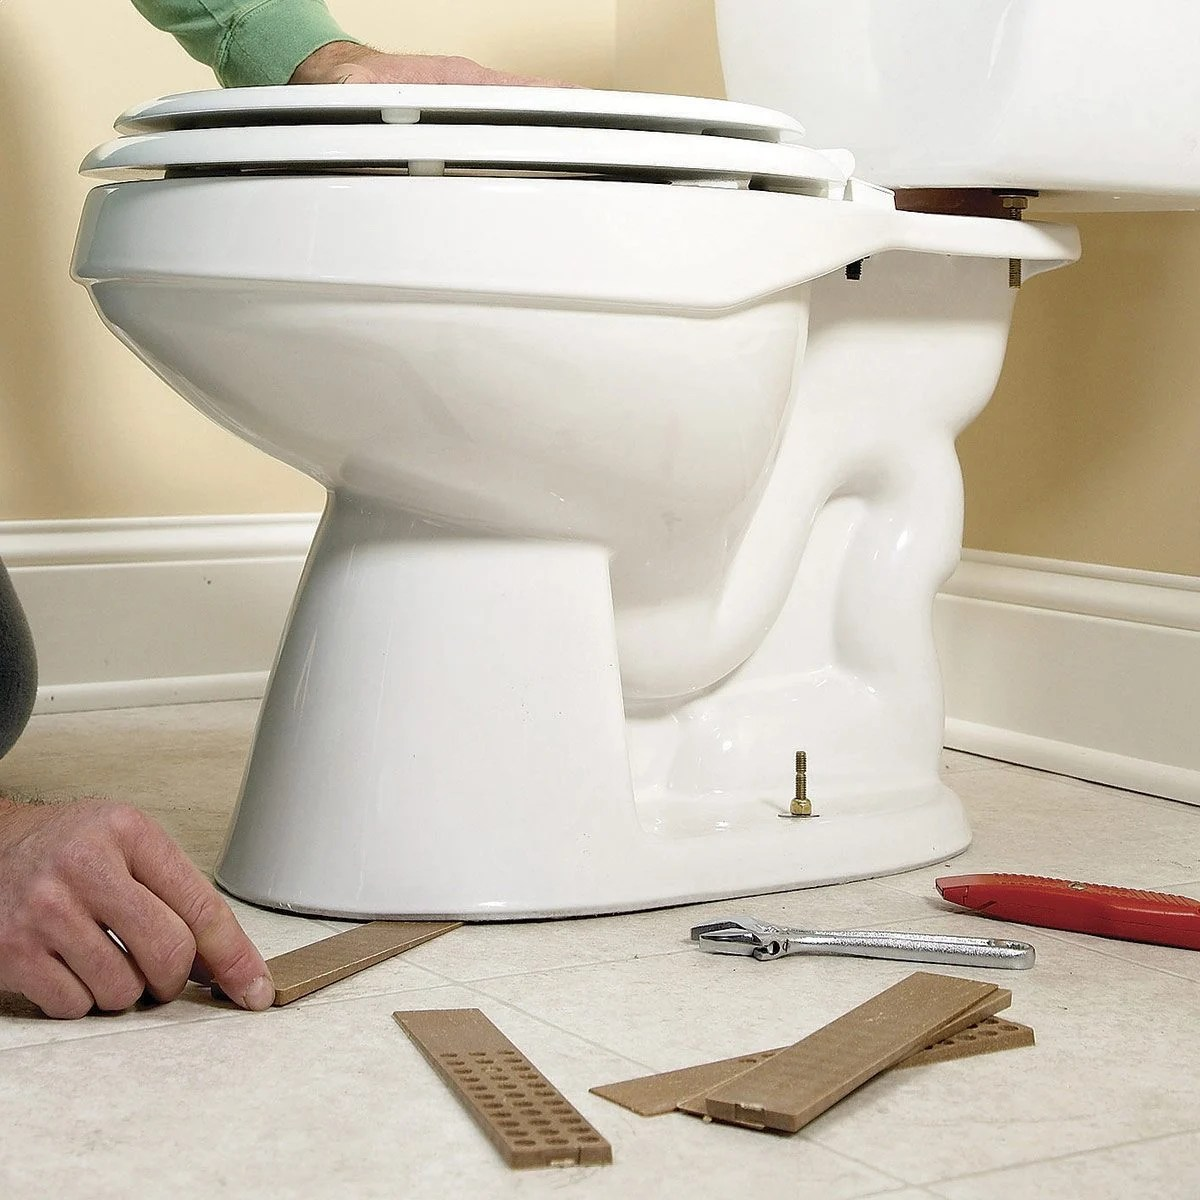 Commodes Solver 14 Toilet Problems You Ll Regret Ignoring The Family Handyman